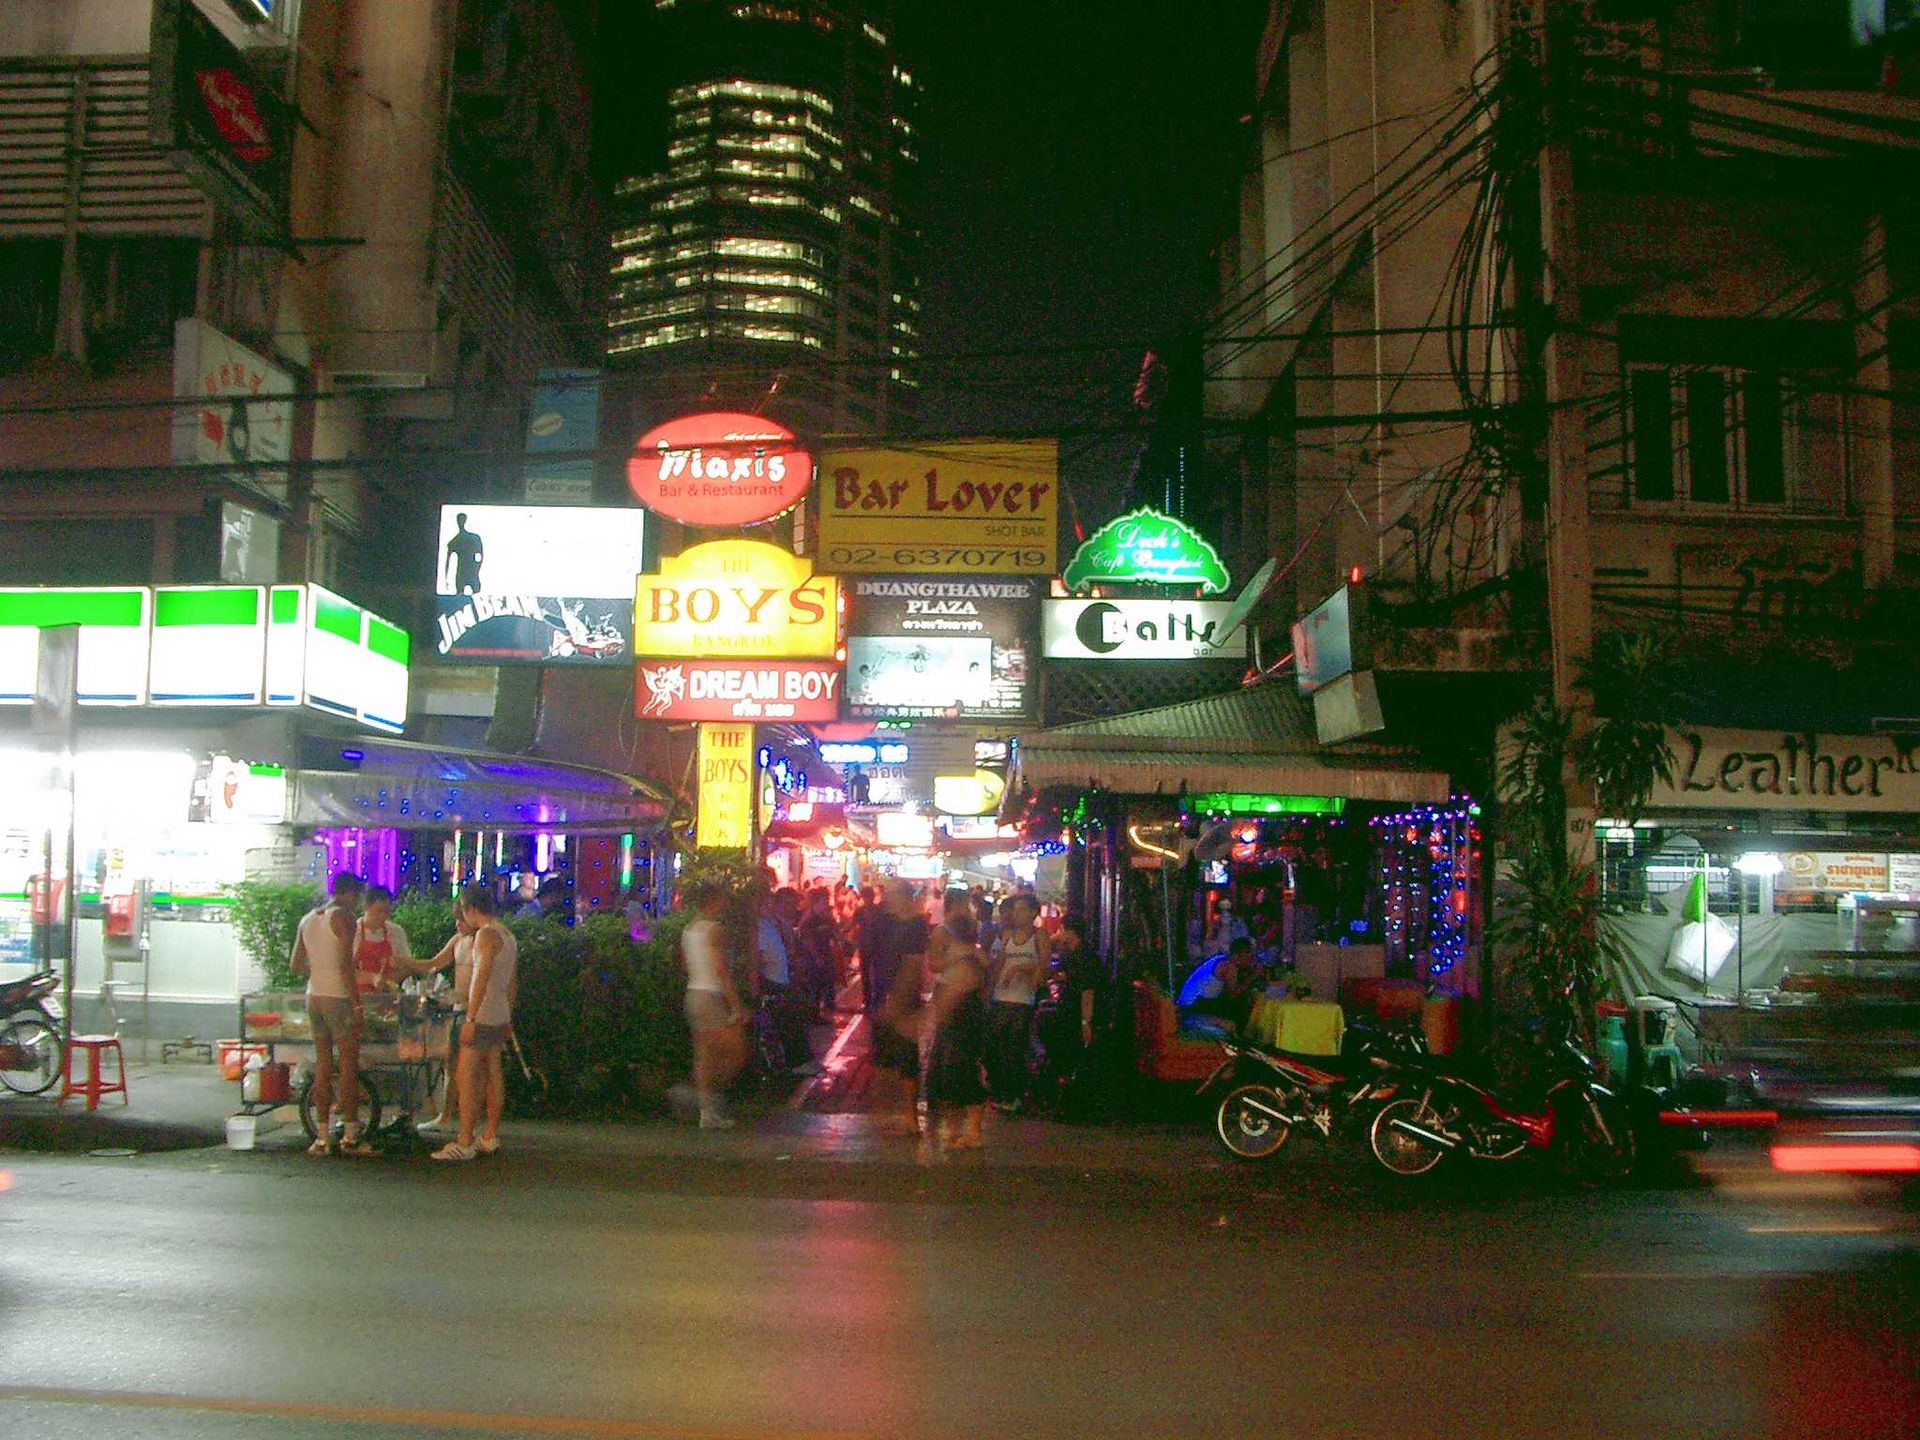 1 night in bangkok pmv with an explanation of the checkmate sign in it - 2 3